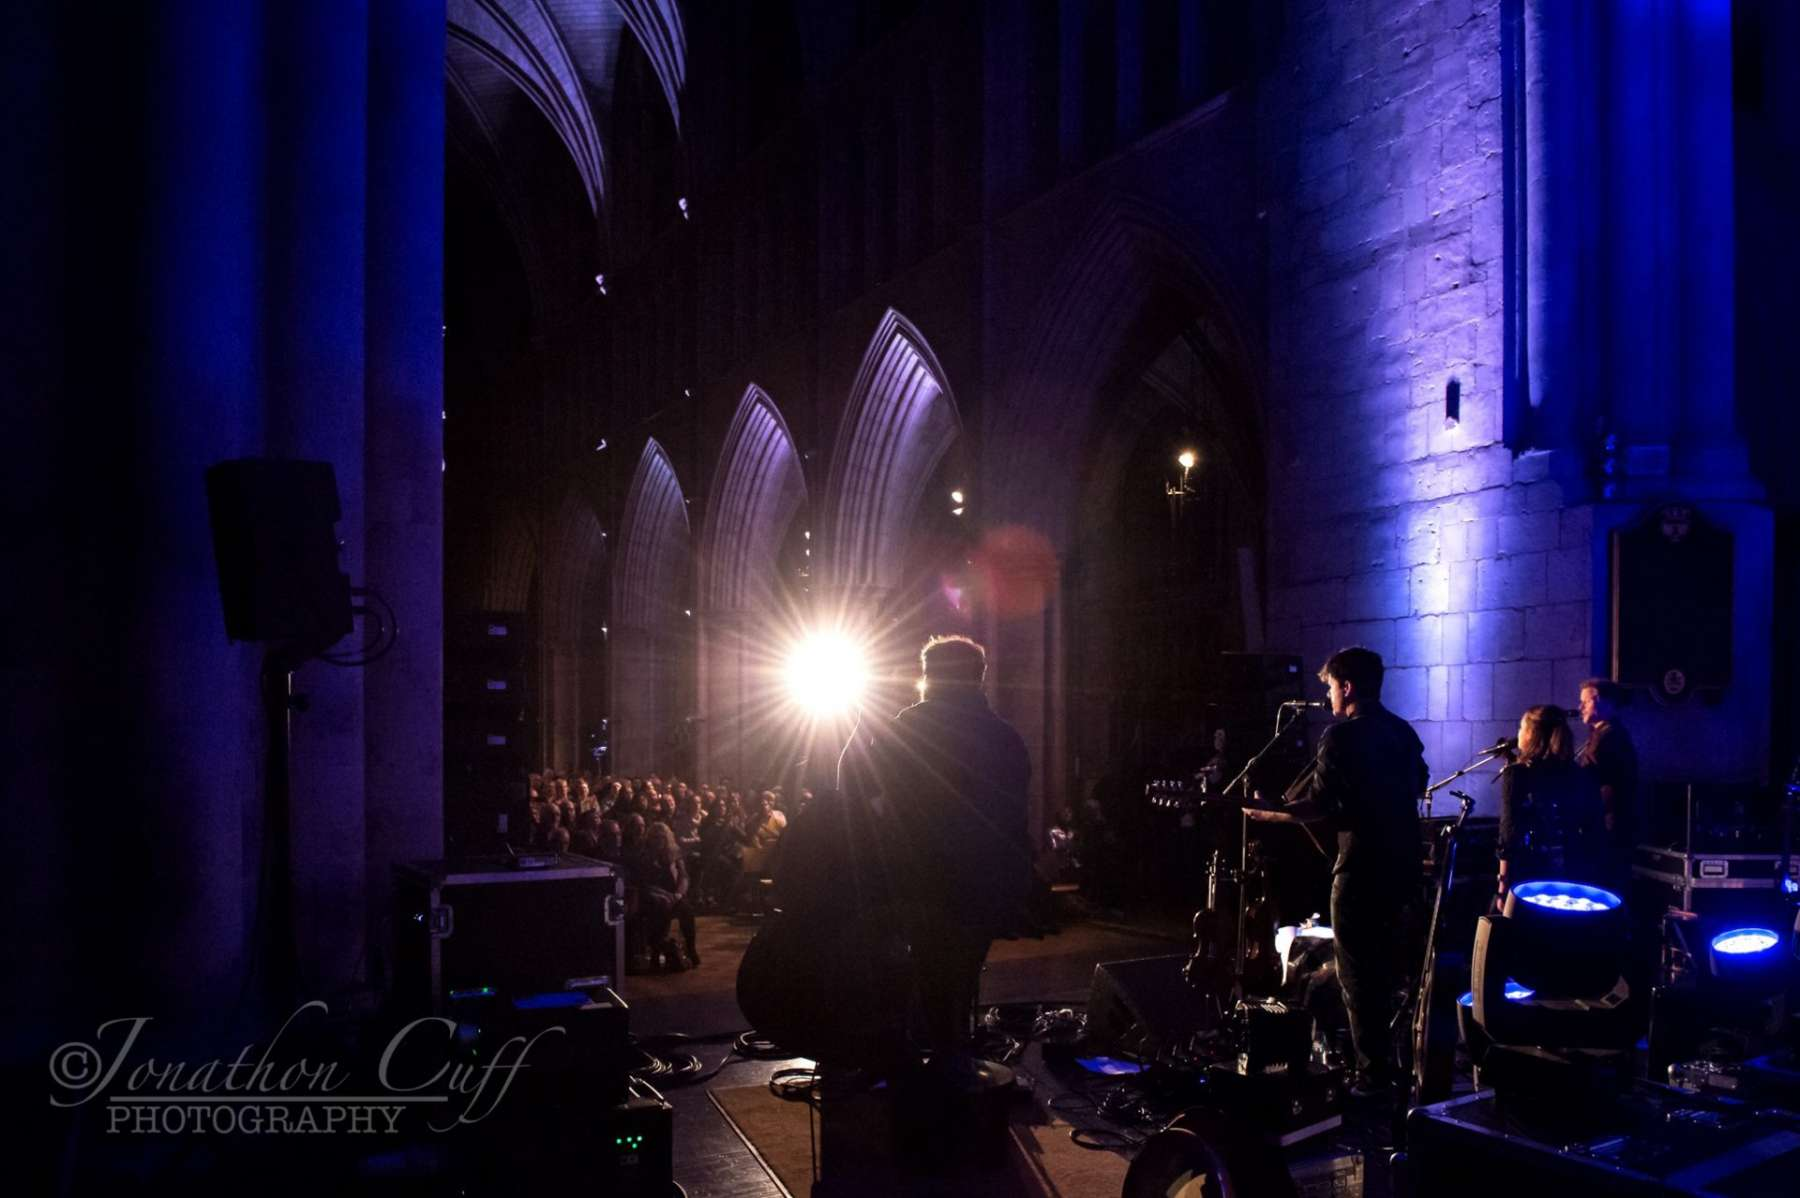 Stage view of Seth Lakeman live in a cathedral